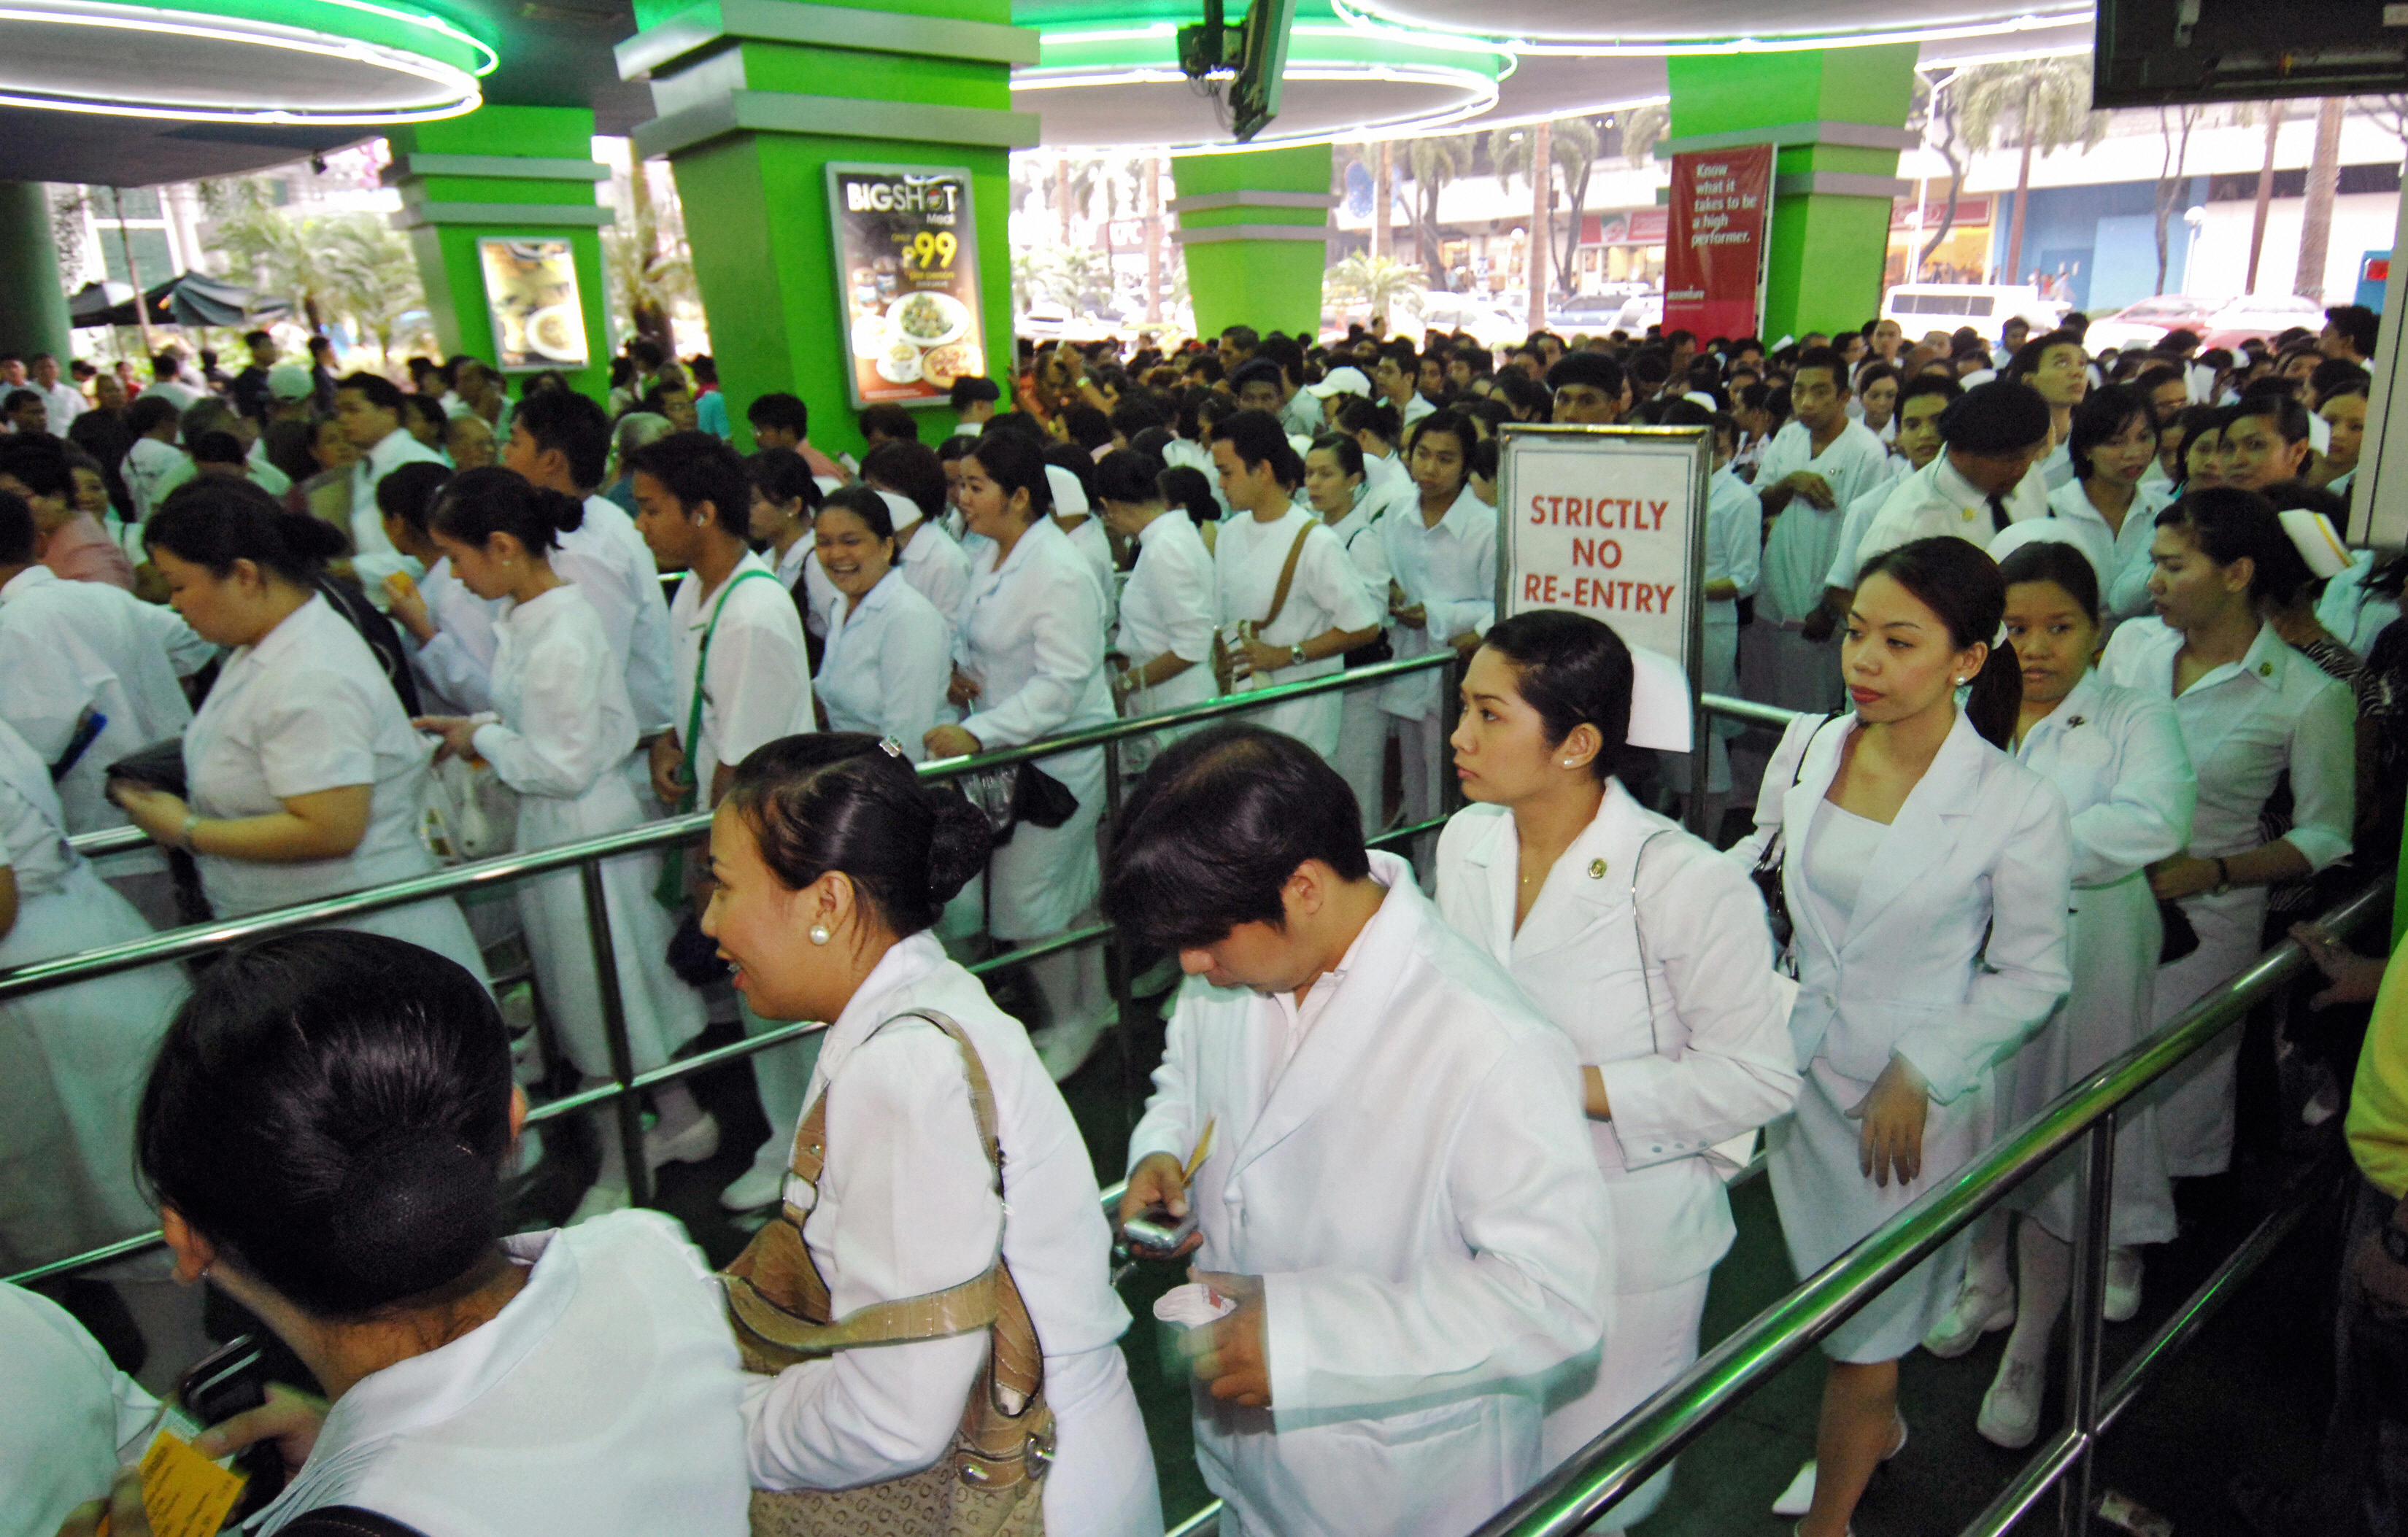 Hundreds of nurses arrive at the Araneta coliseum in Manila, 02 October 2007 to attend official oath taking ceremonies after passing the June 2007 government licensure examination, where 31,275 successful examinees from the more than 64,000 passed the tests conducted nationwide.